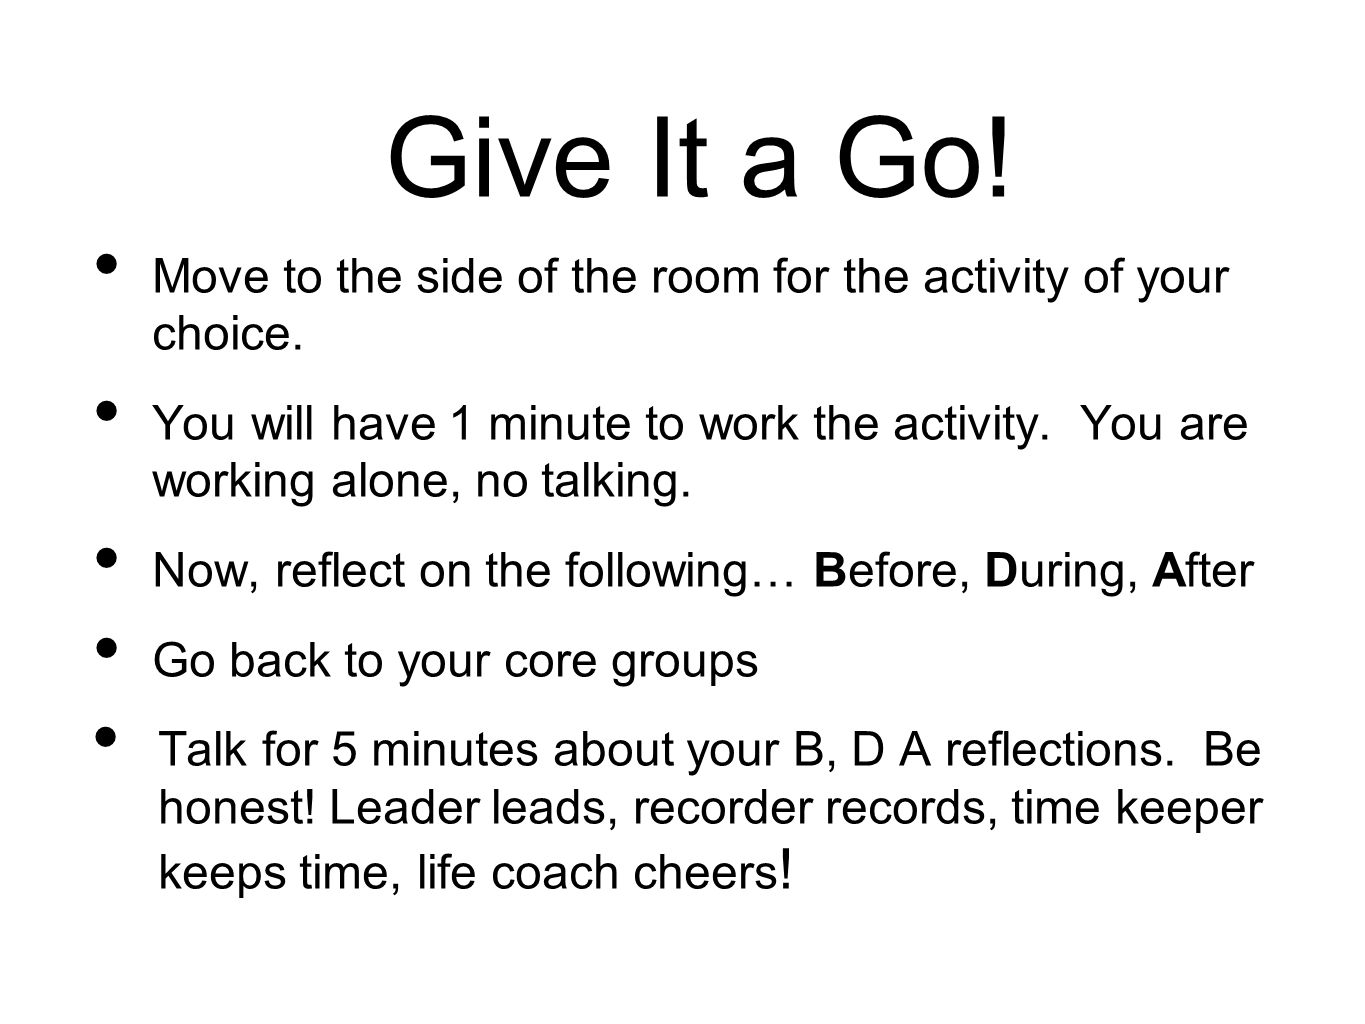 Give It a Go. Move to the side of the room for the activity of your choice.